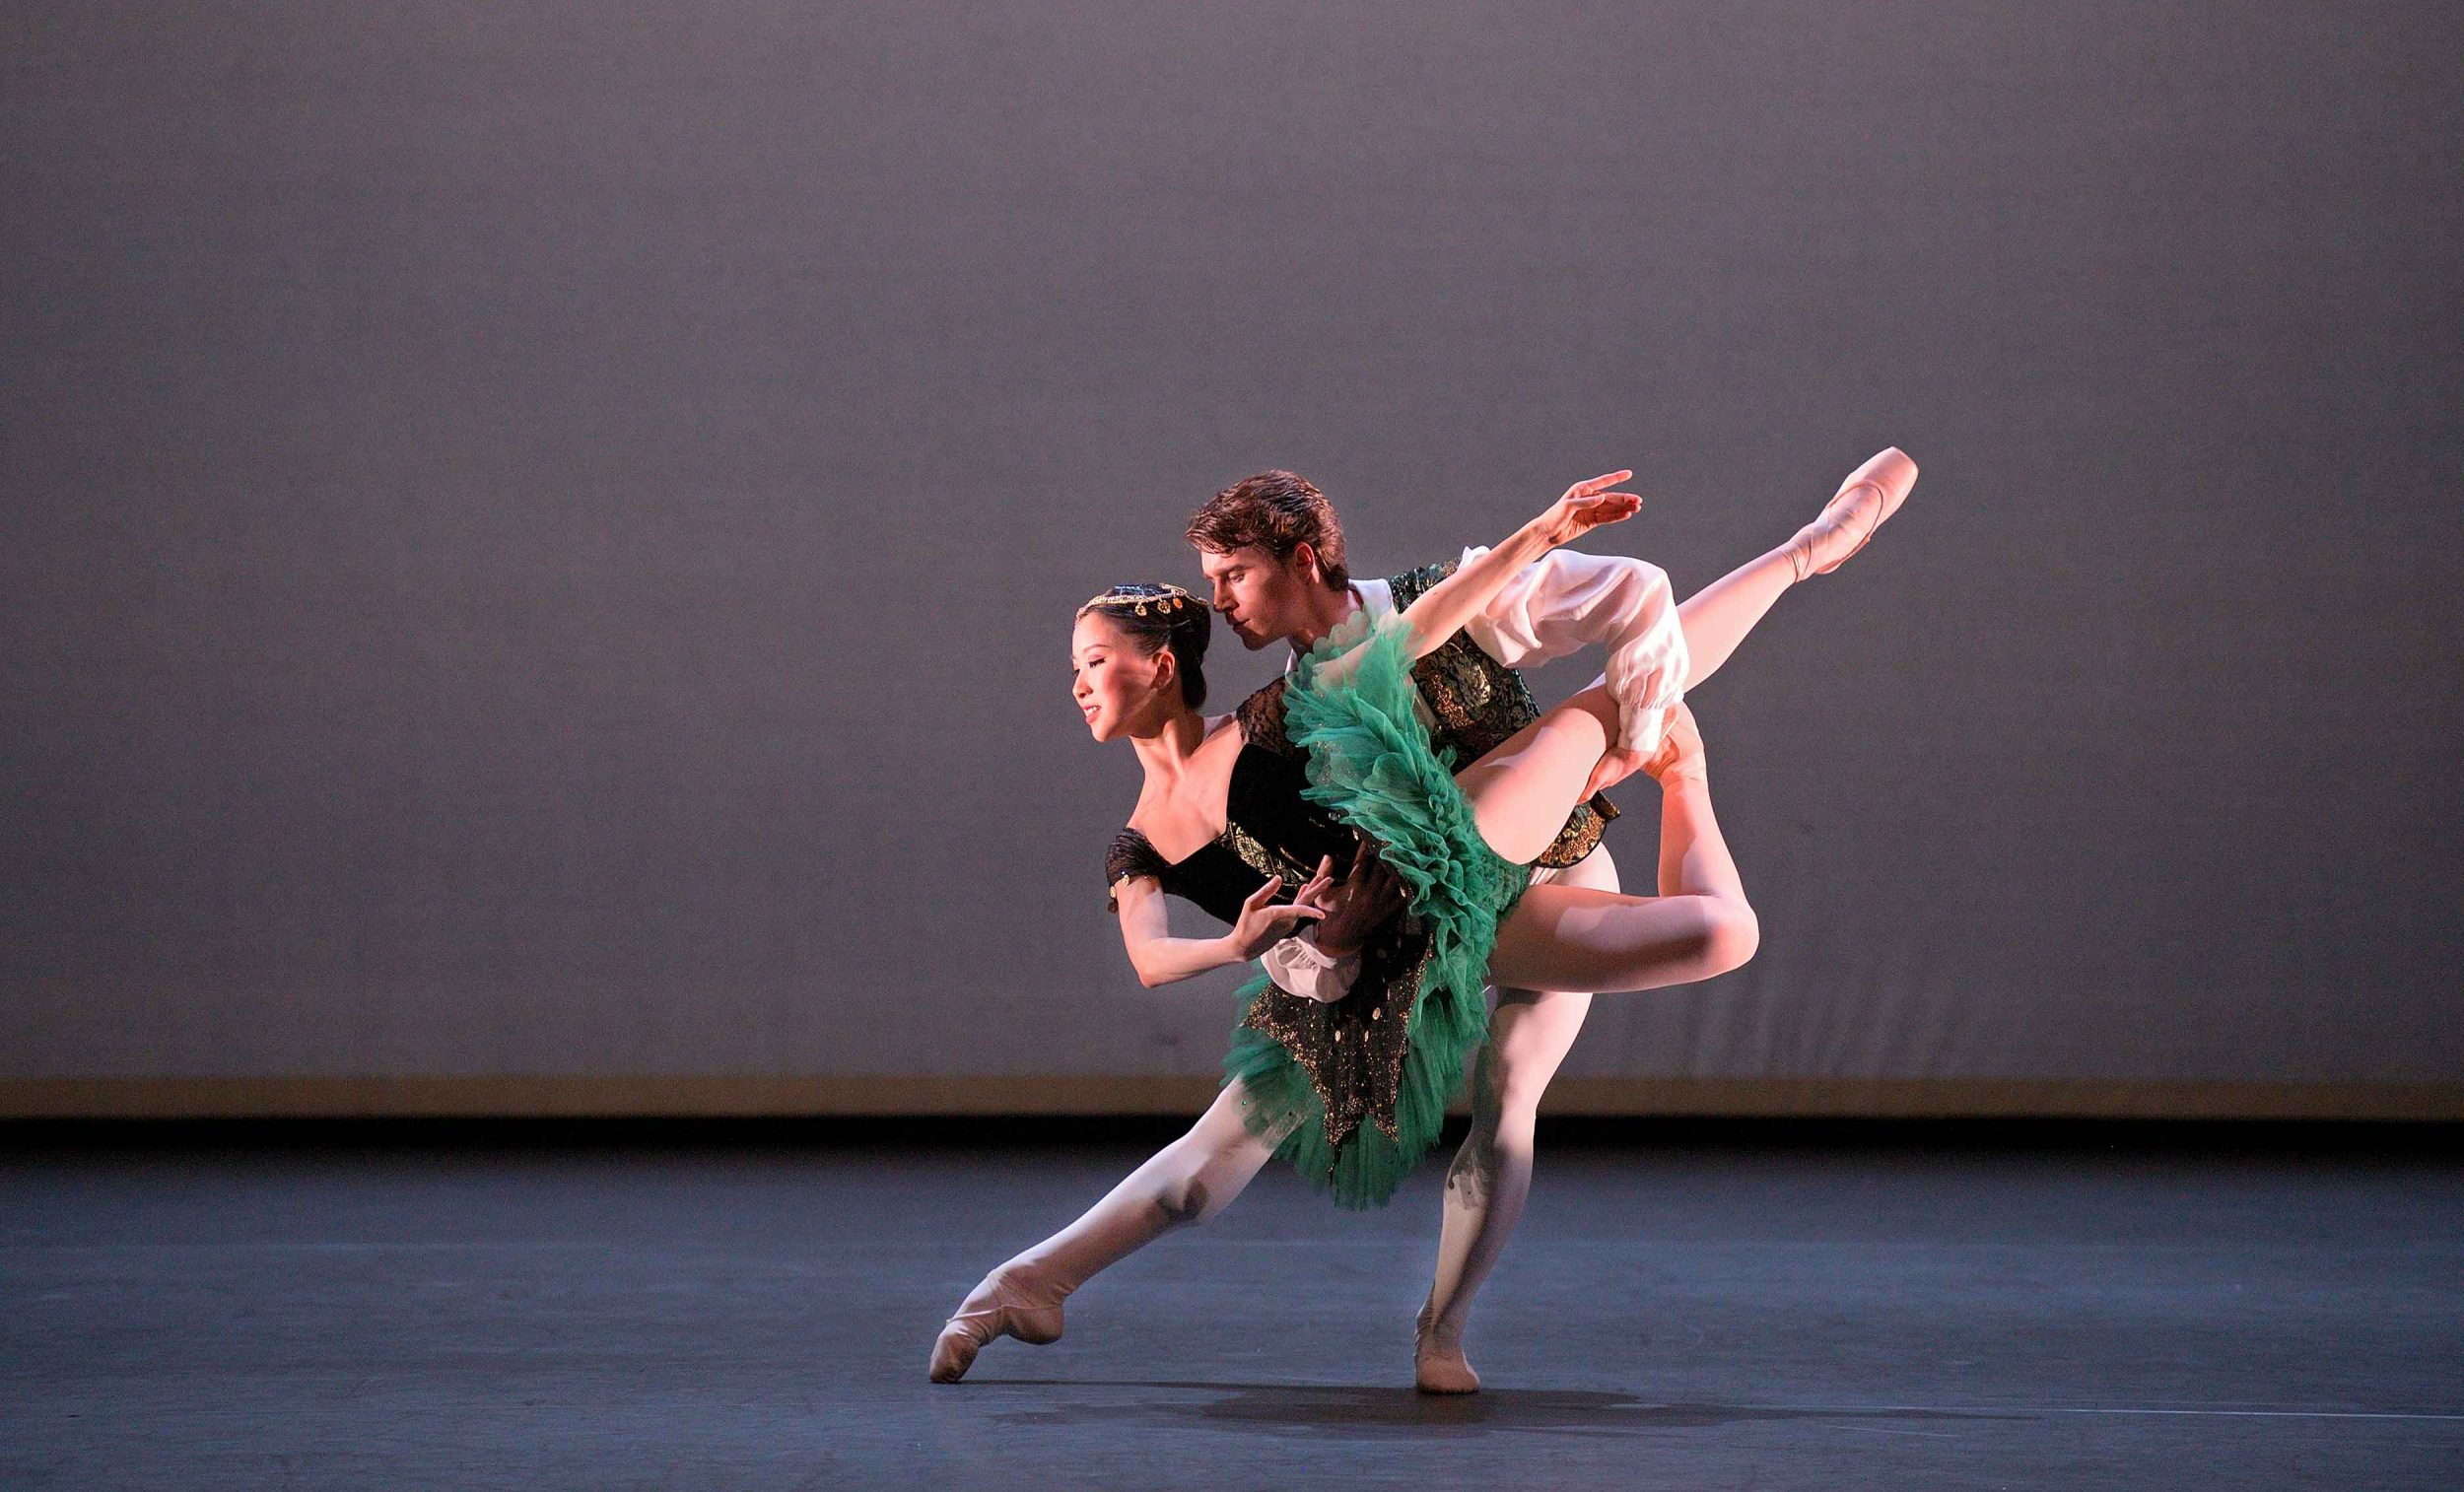 Rina-Kanehara-and-Aitor-Arrieta-performing-the-Esmeralda-pas-de-deux-©-Laurent-Liotardo-(3)